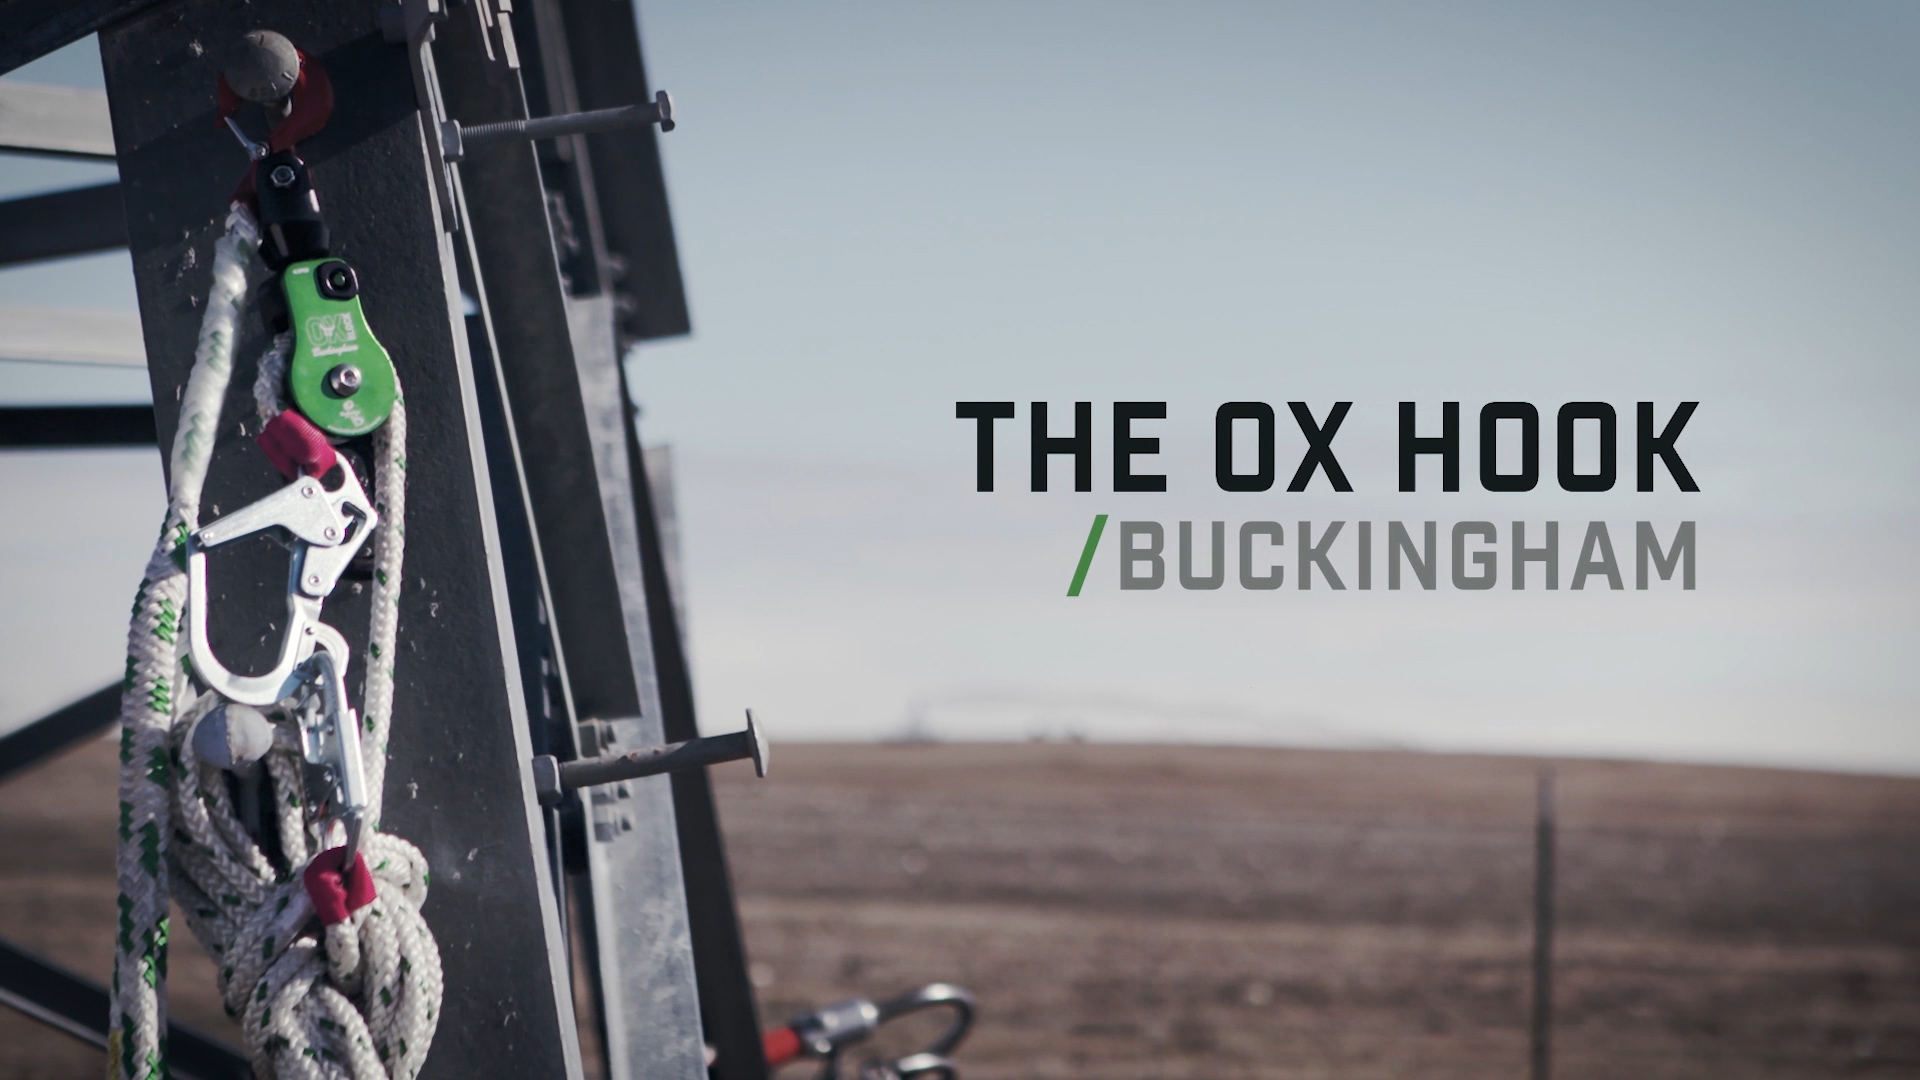 The OX Hook